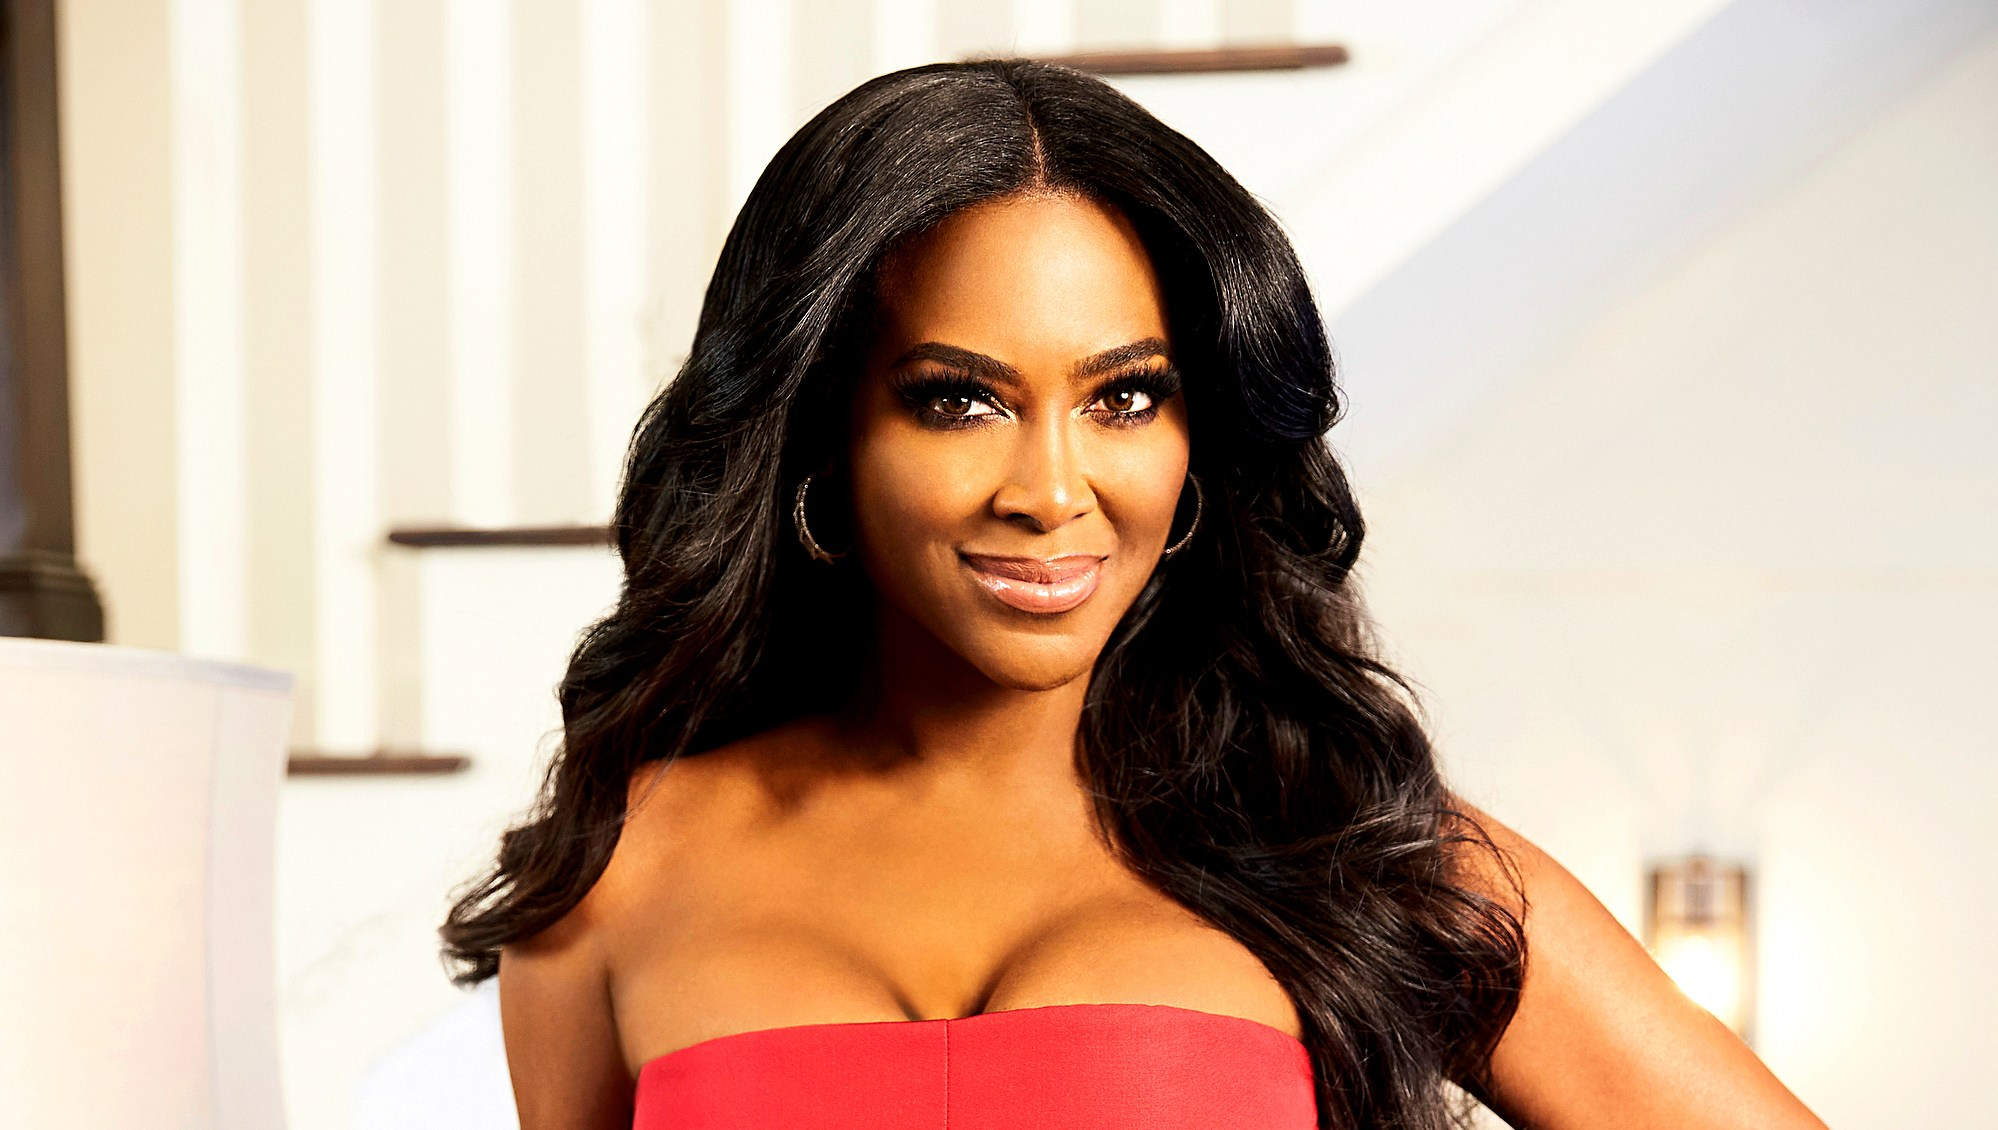 'Real Housewives of Atlanta' star Kenya Moore